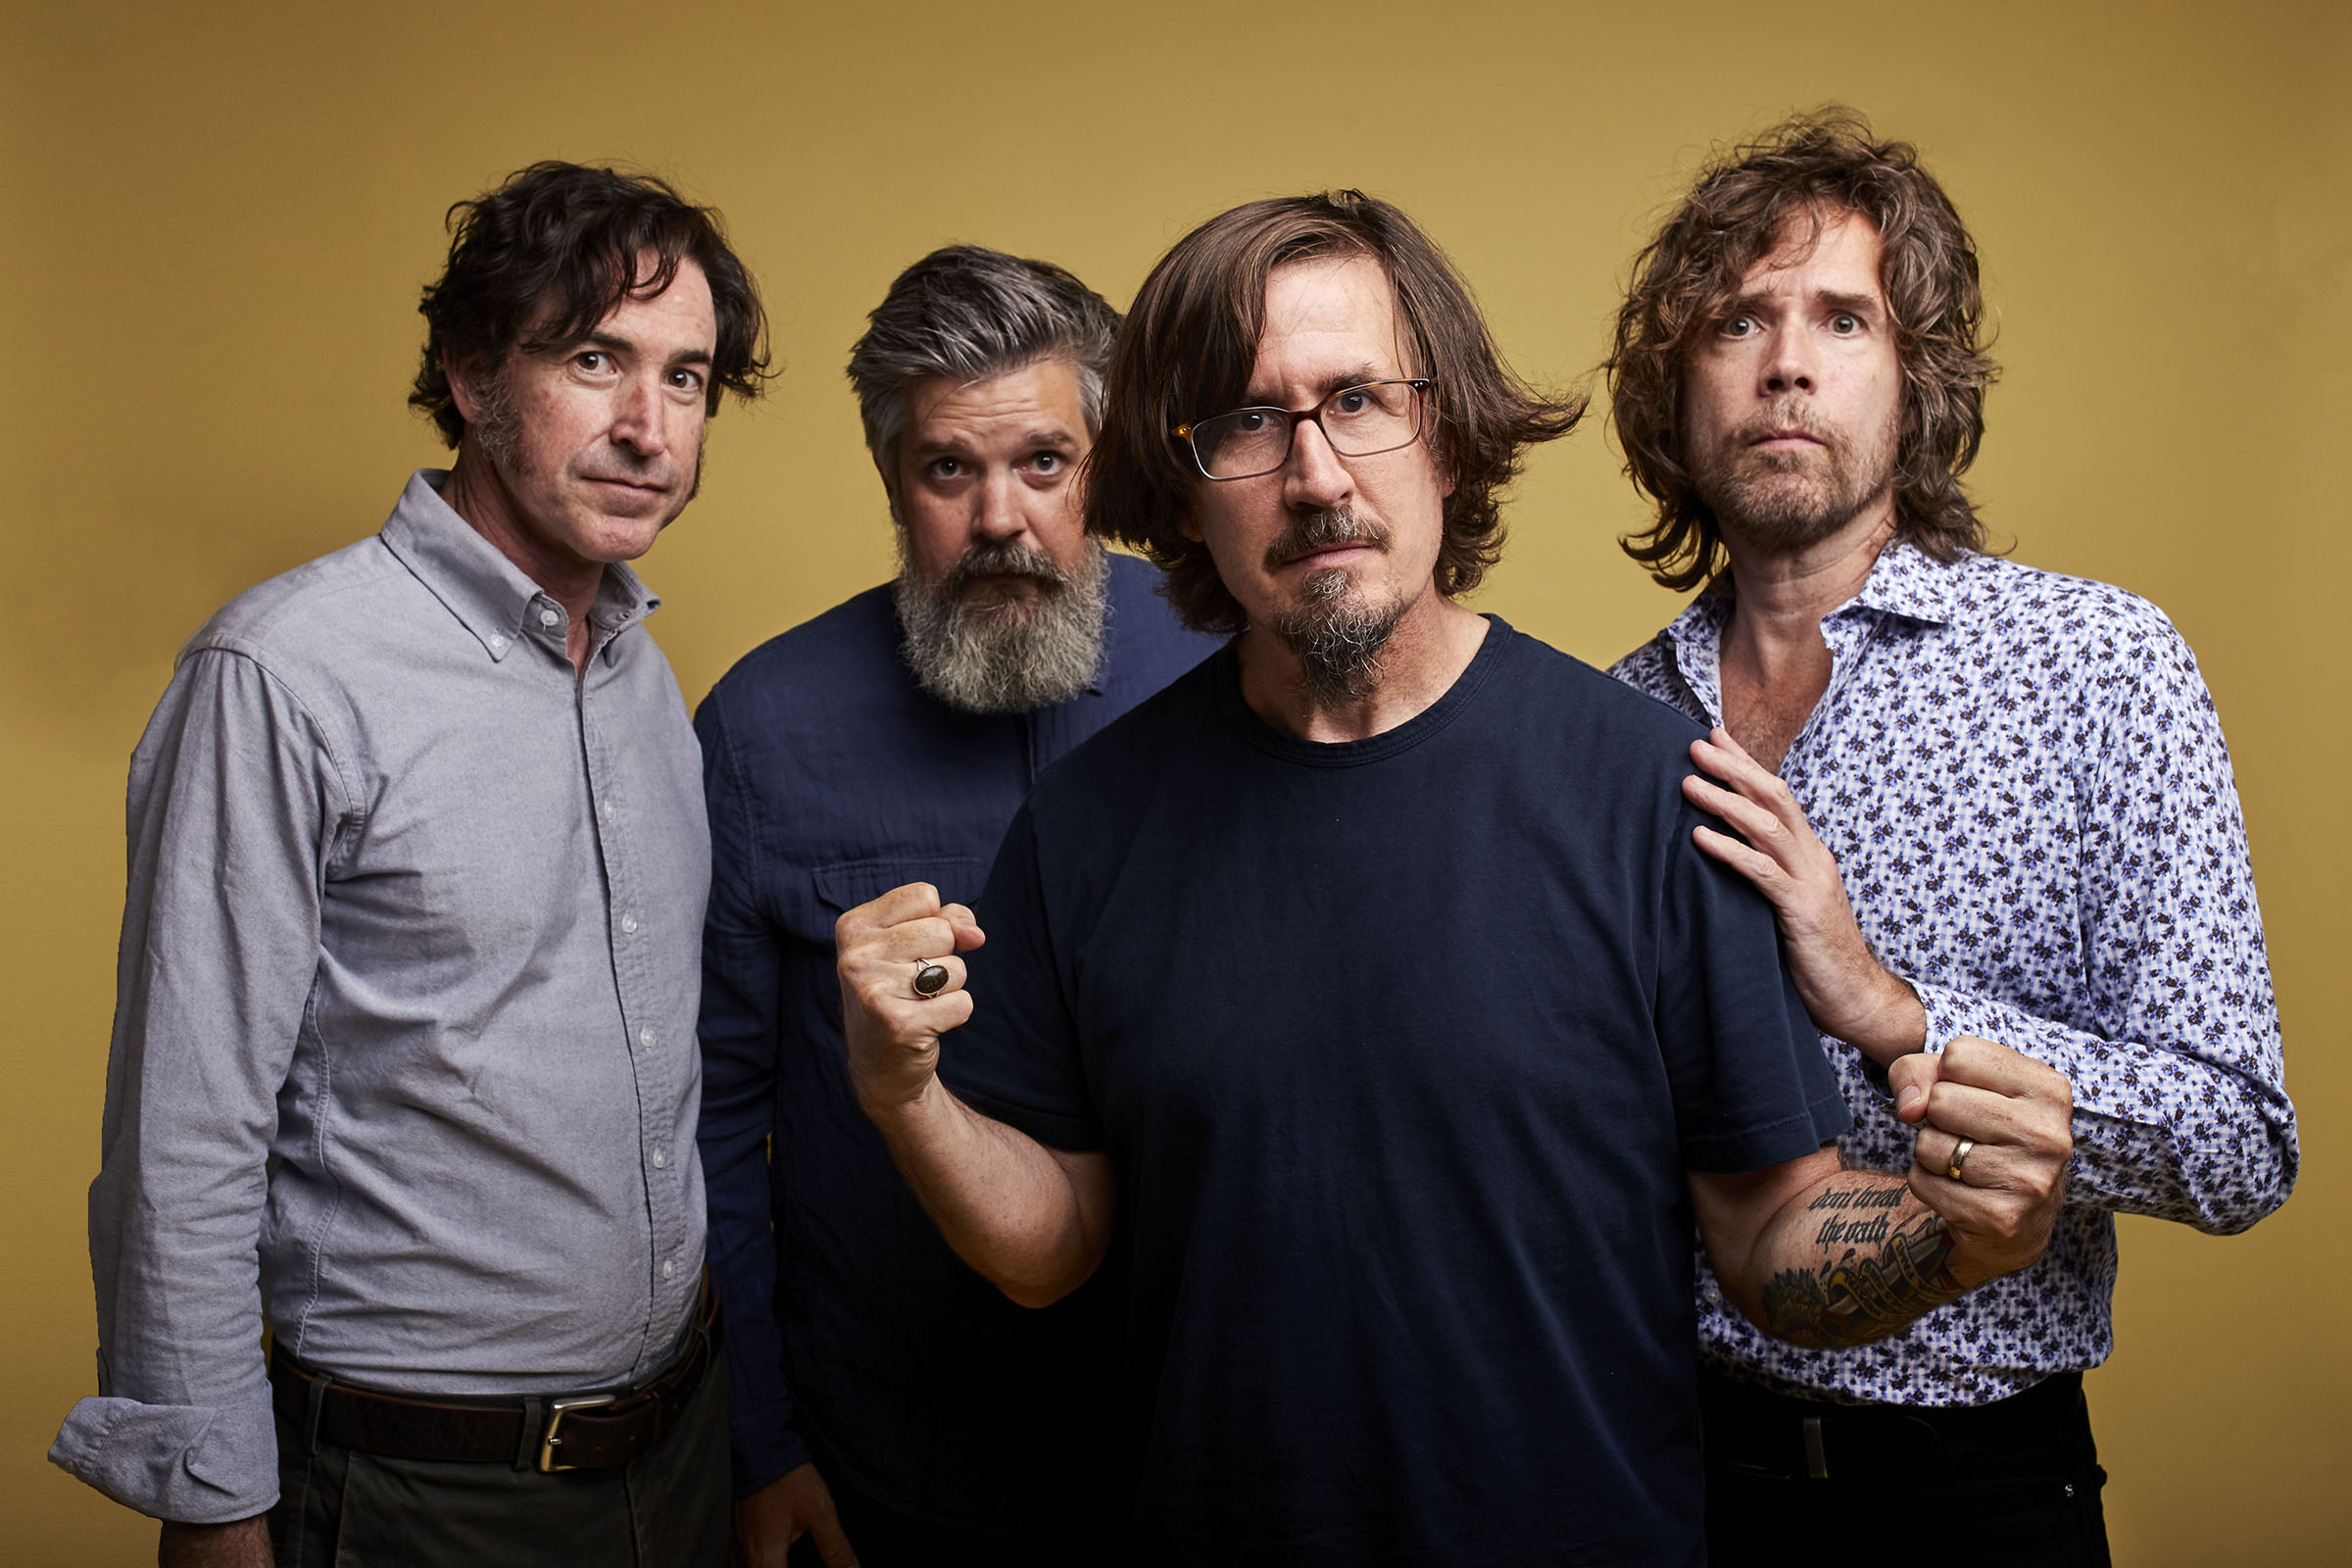 Watch THE MOUNTAIN GOATS transform into bobbleheads for their first music video in five years